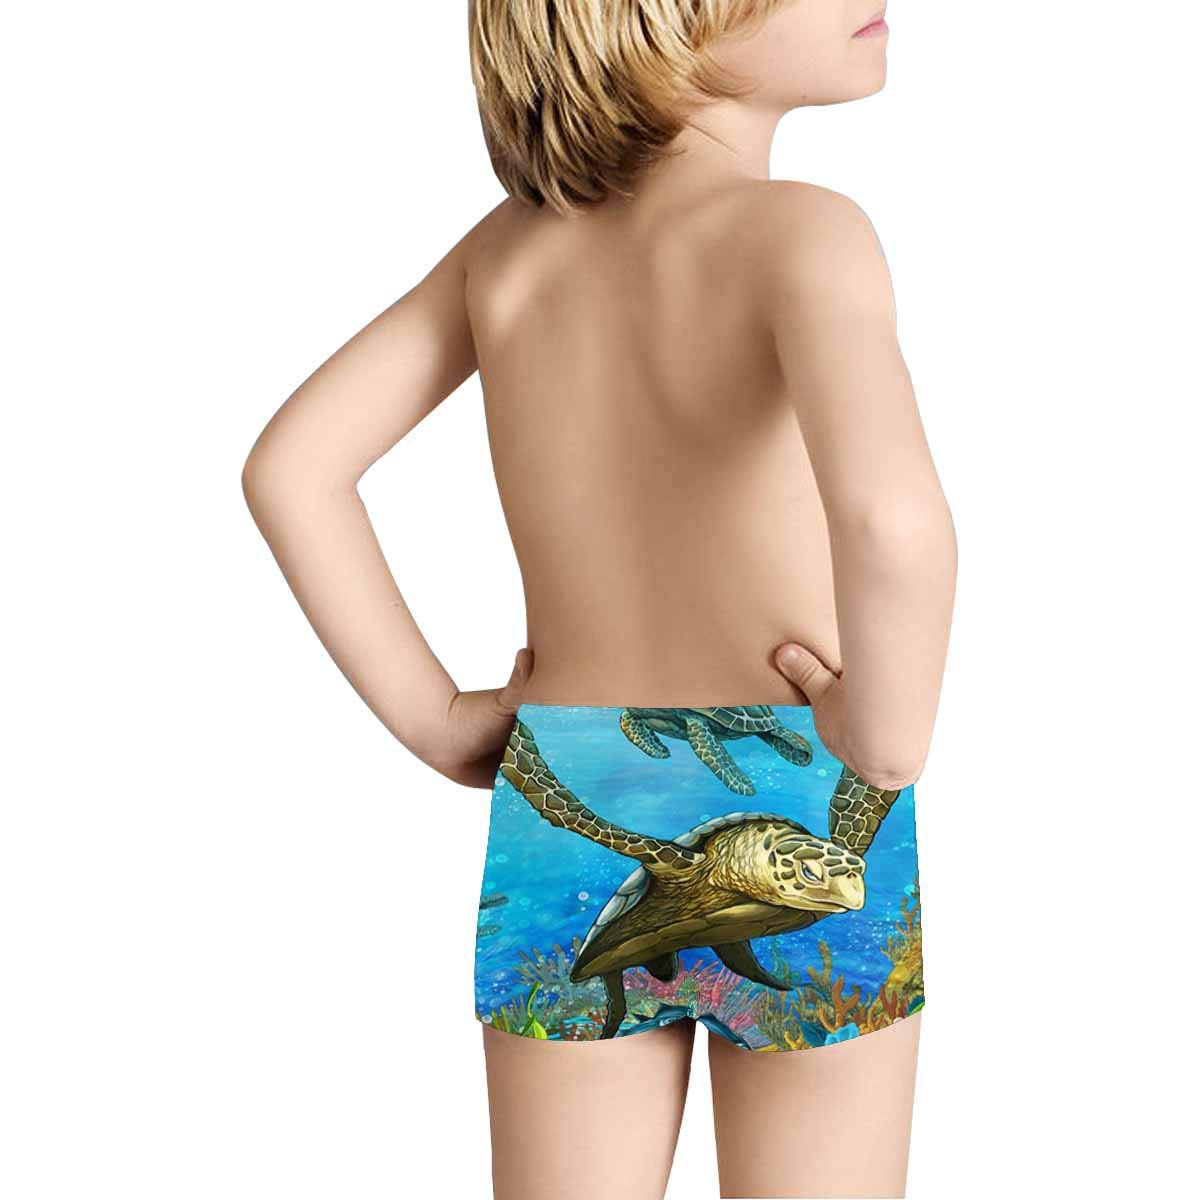 5T-2XL INTERESTPRINT Kids Sea Turtle with Coral Reef Art Comfortable Breathable Briefs